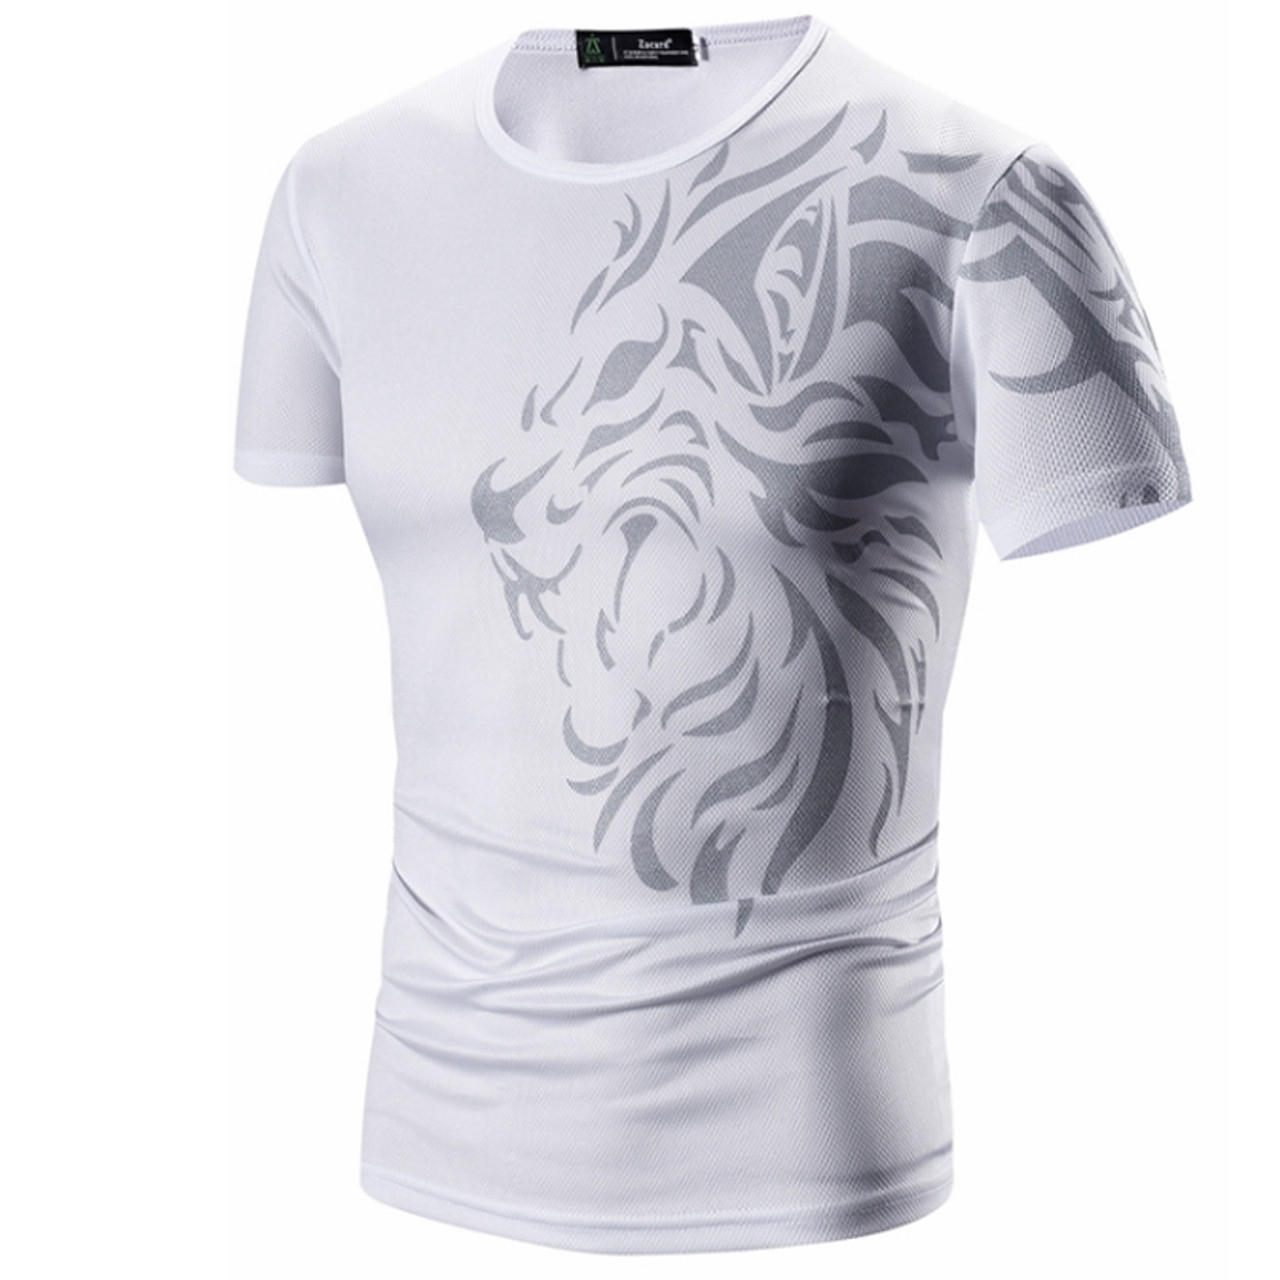 9a1ab1758227 ... T Shirt Men 2018 New Brand Summer High Quality Short Sleeve Printing  Casual Male T- ...